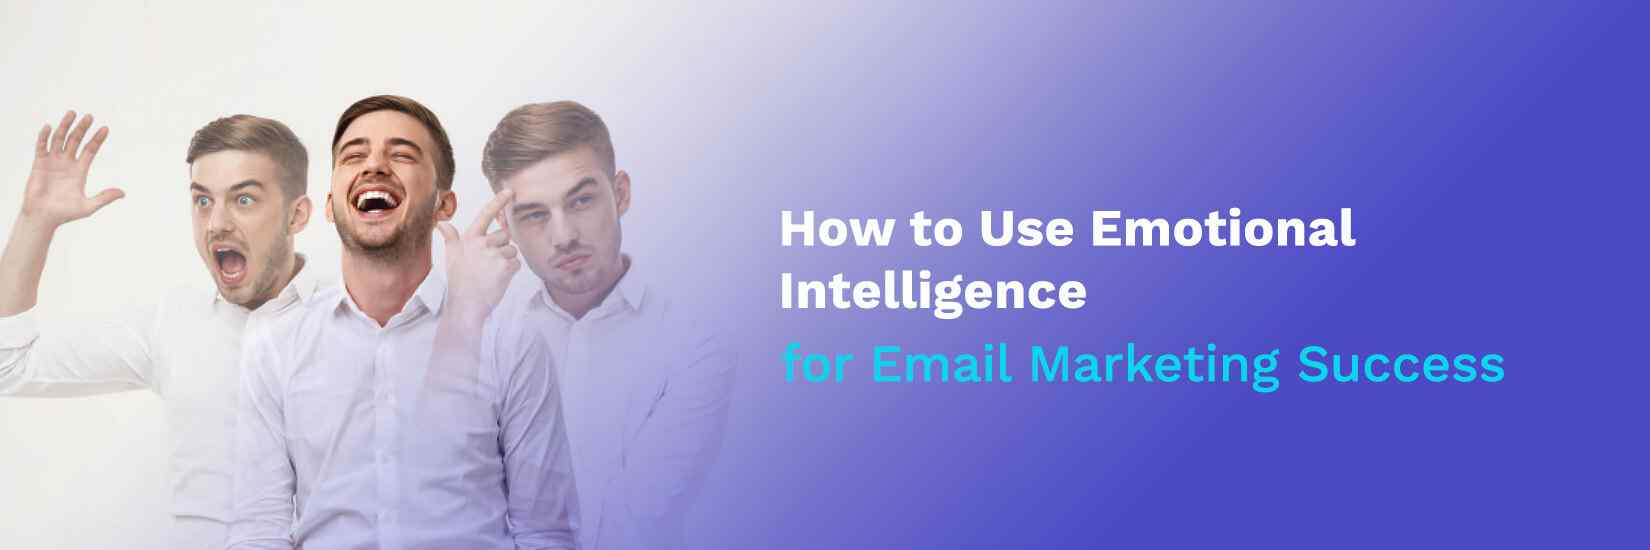 How to Use Emotional Intelligence for Email Marketing Success